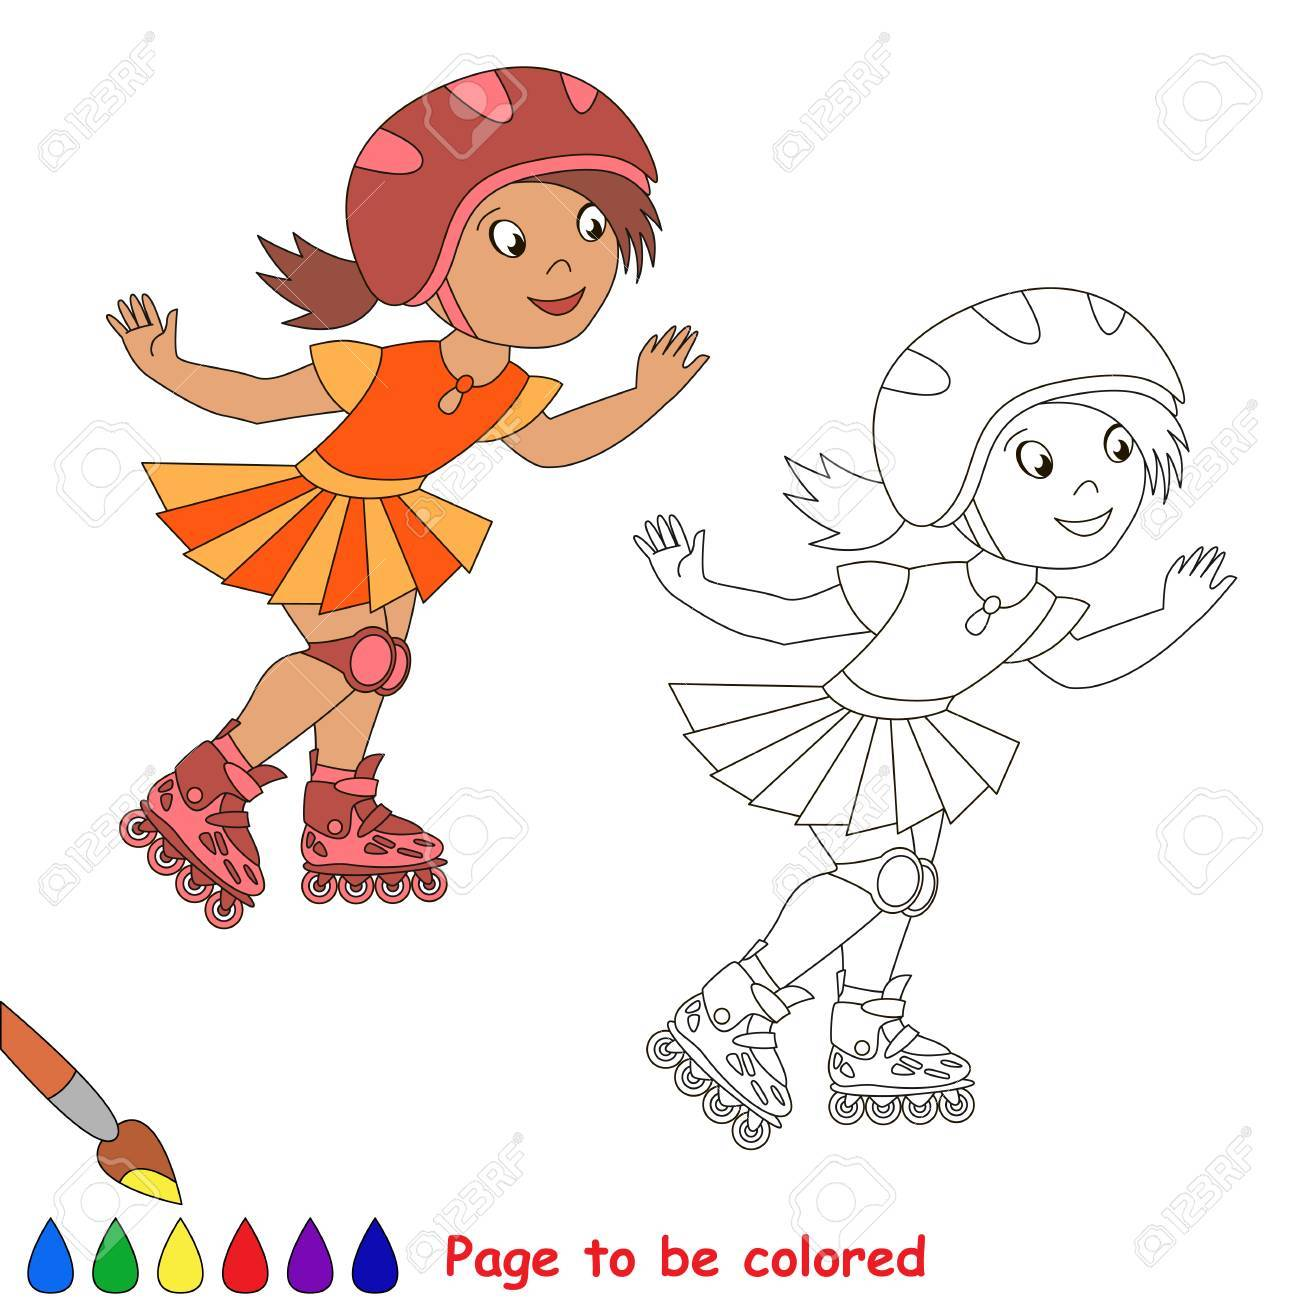 One Child Girl Roller Skating In A Red Helmet And Orange Dress Page To Be